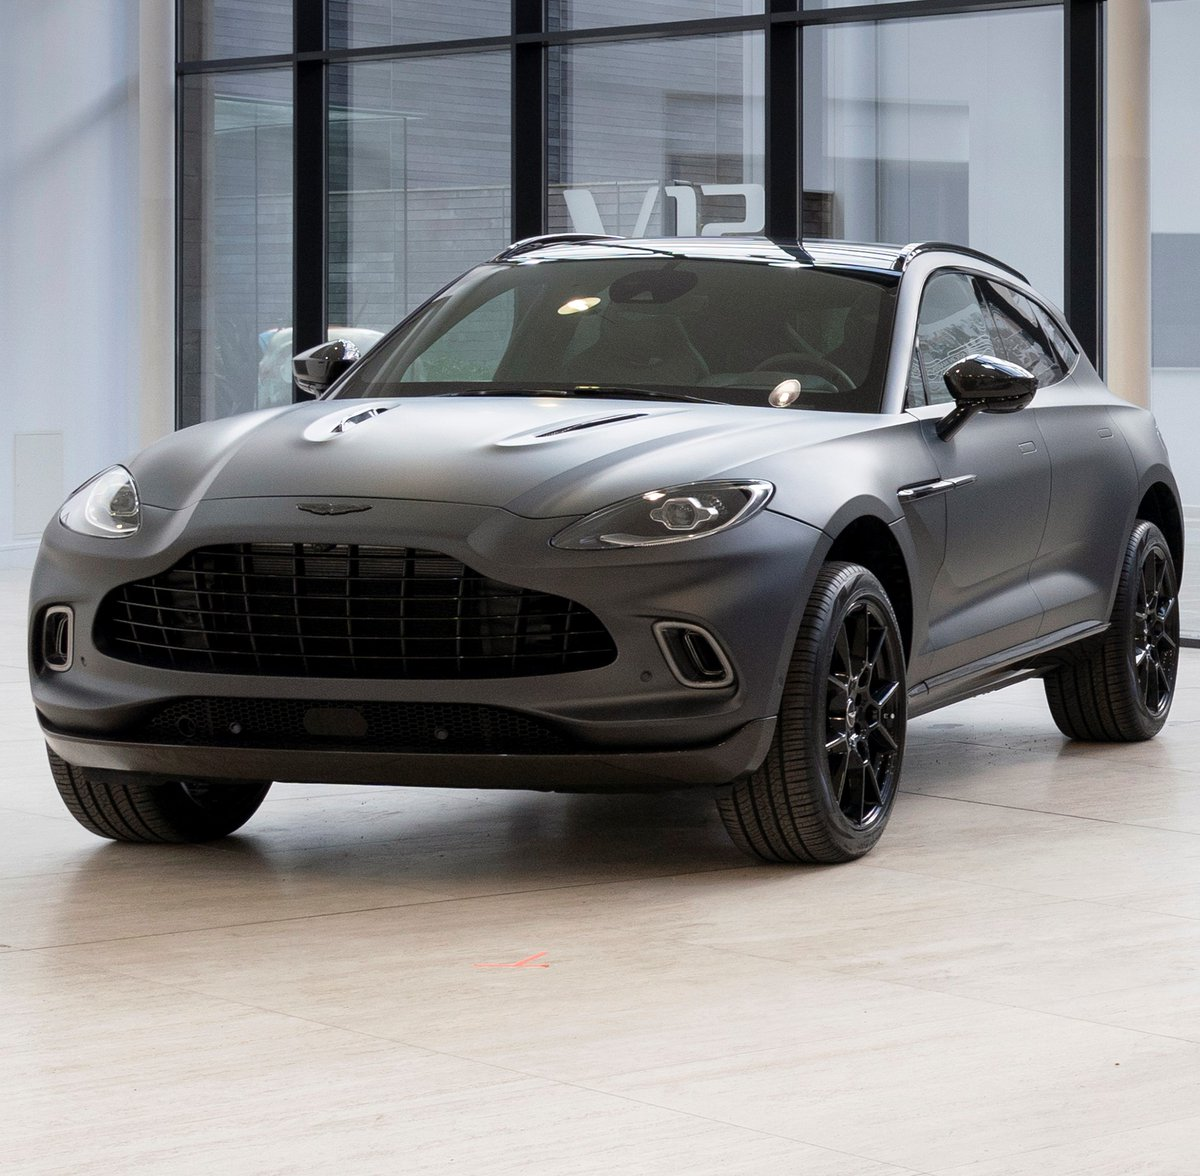 Aston Martin On Twitter Launched In February Dbx Has Been Treated To A Touch Of Personalisation Magic Through Our Bespoke Service Q By Aston Martin To Tease Our First Suv S Darker Side